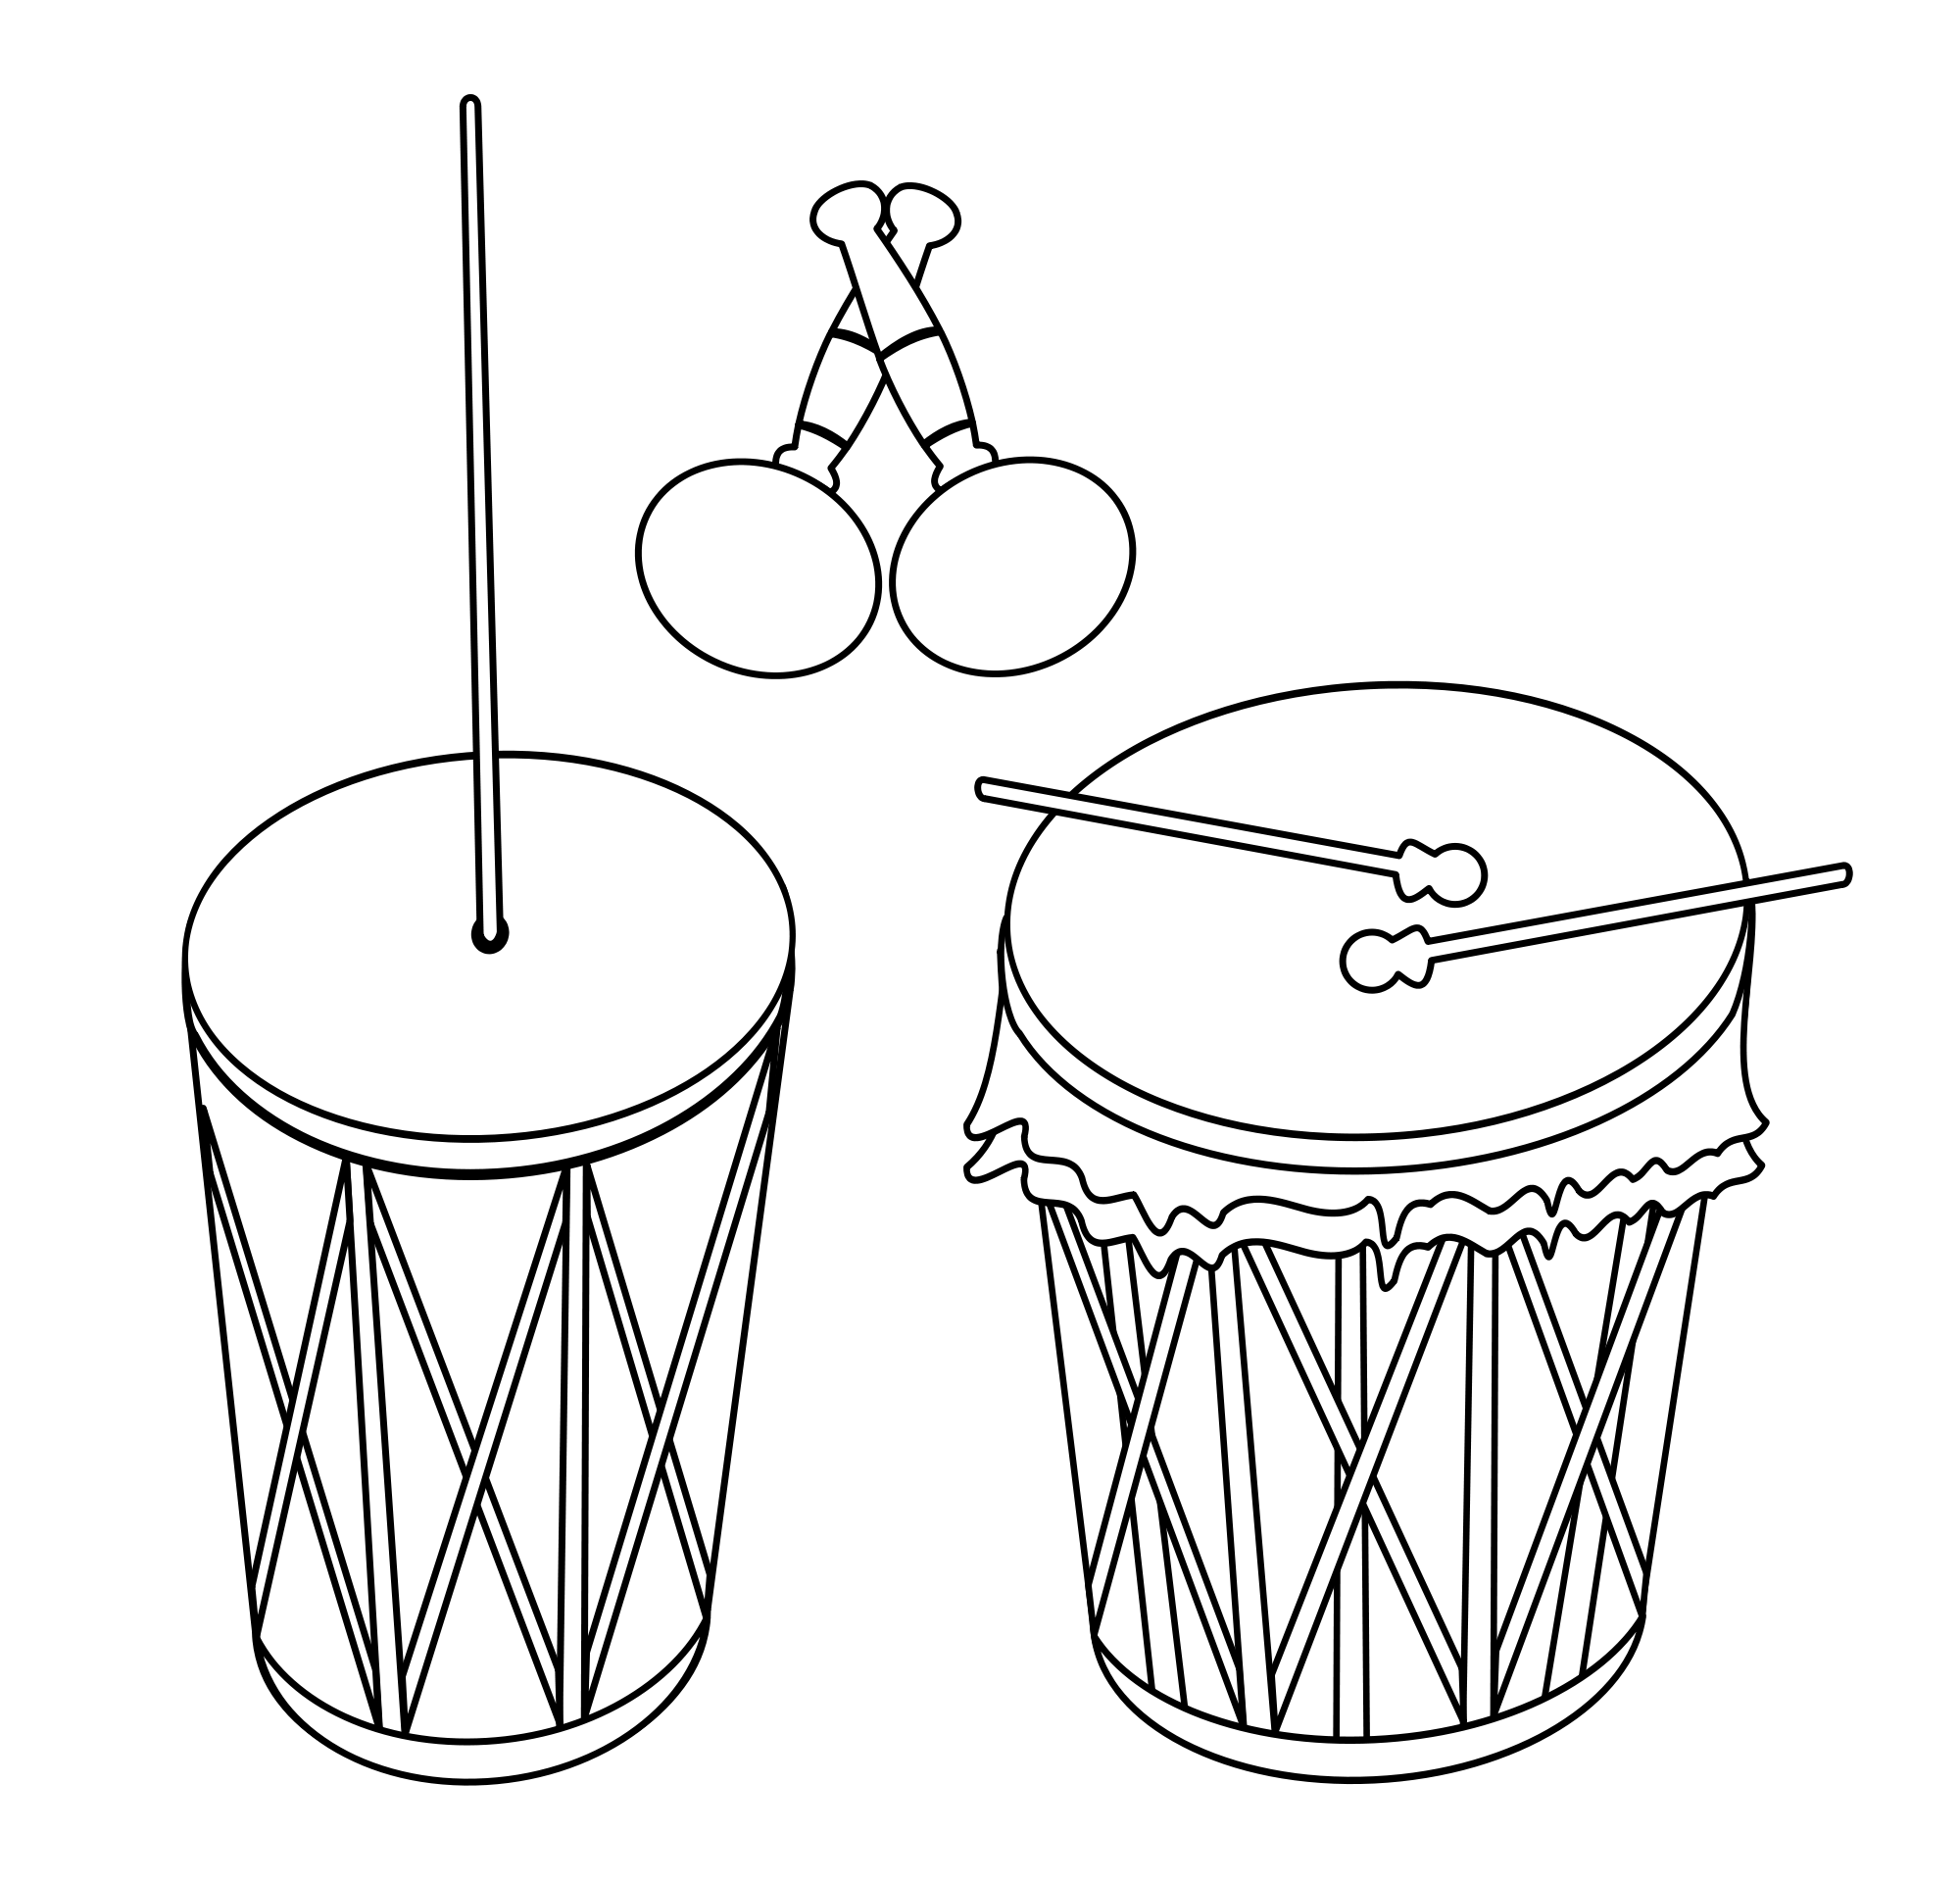 Maracas drawing percussion. File maraca tambor y